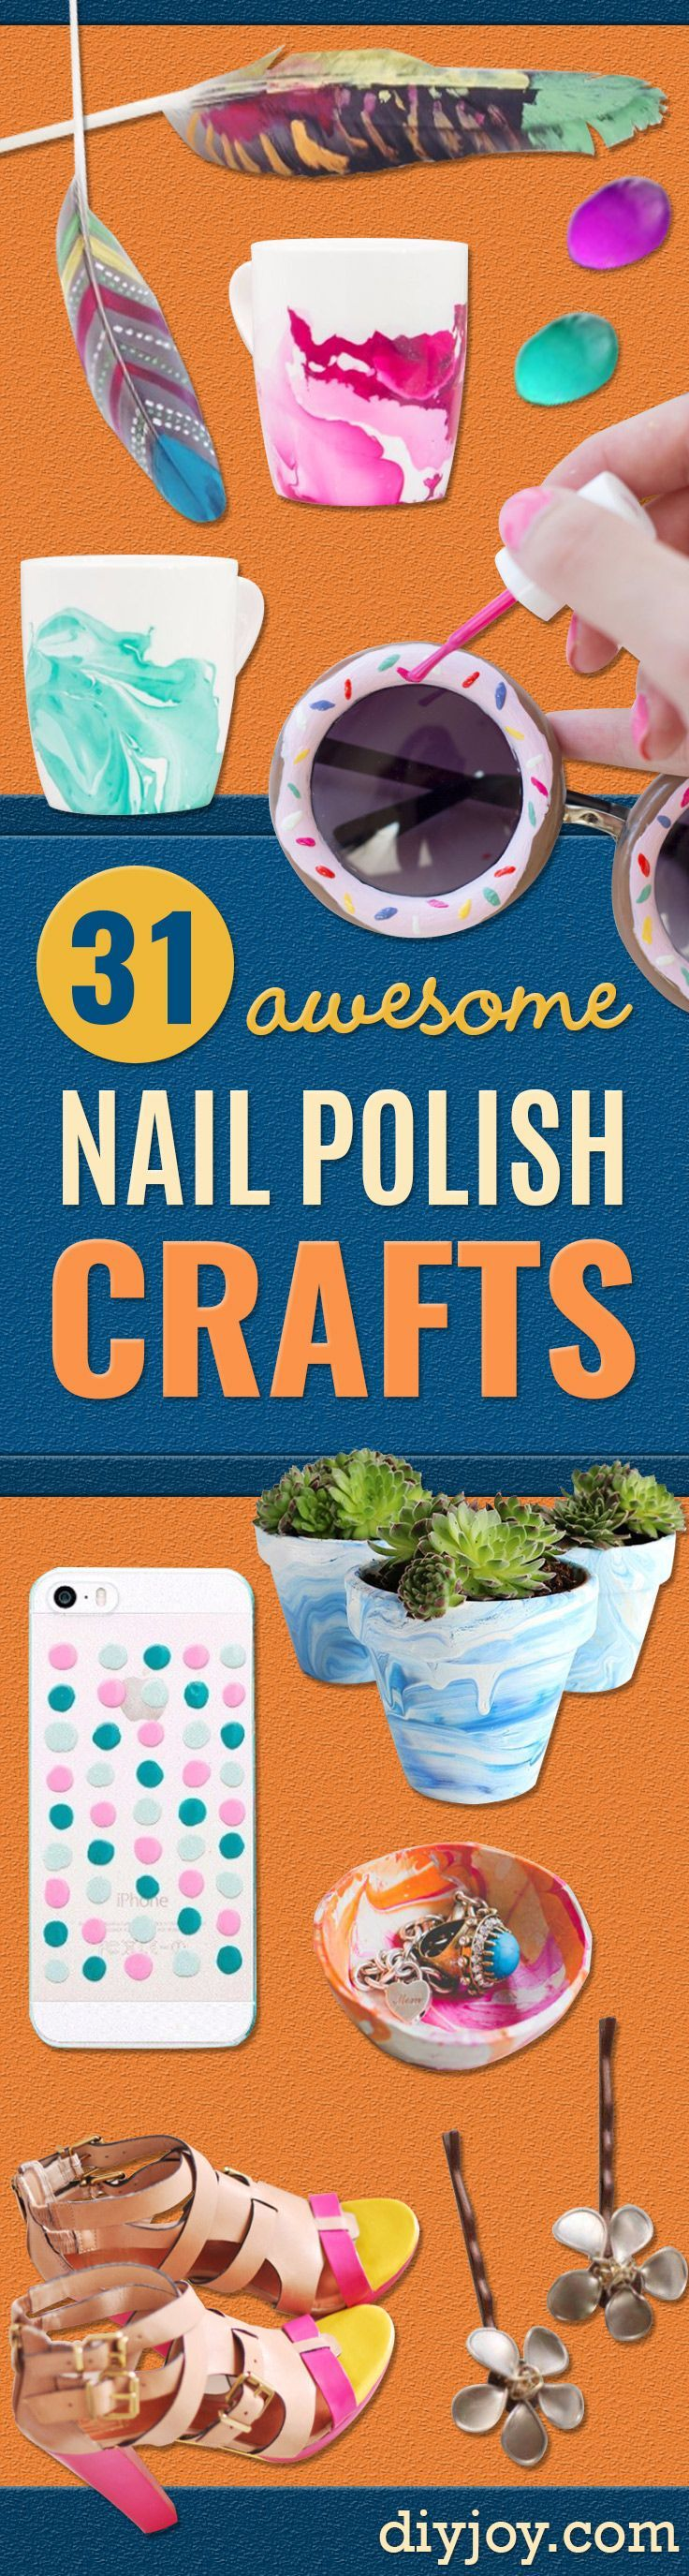 DIY Nail Polish Crafts  - Easy and Cheap Craft Ideas for Girls, Teens, Tweens and Adults | Fun and Cool DIY Projects You Can Make With Fingernail Polish - Do It Yourself Wire Flowers, Glue Gun Craft Projects and Jewelry Made From nailpolish - Water Marble Tutorials and How To With Step by Step Instructions http://diyjoy.com/nail-polish-crafts